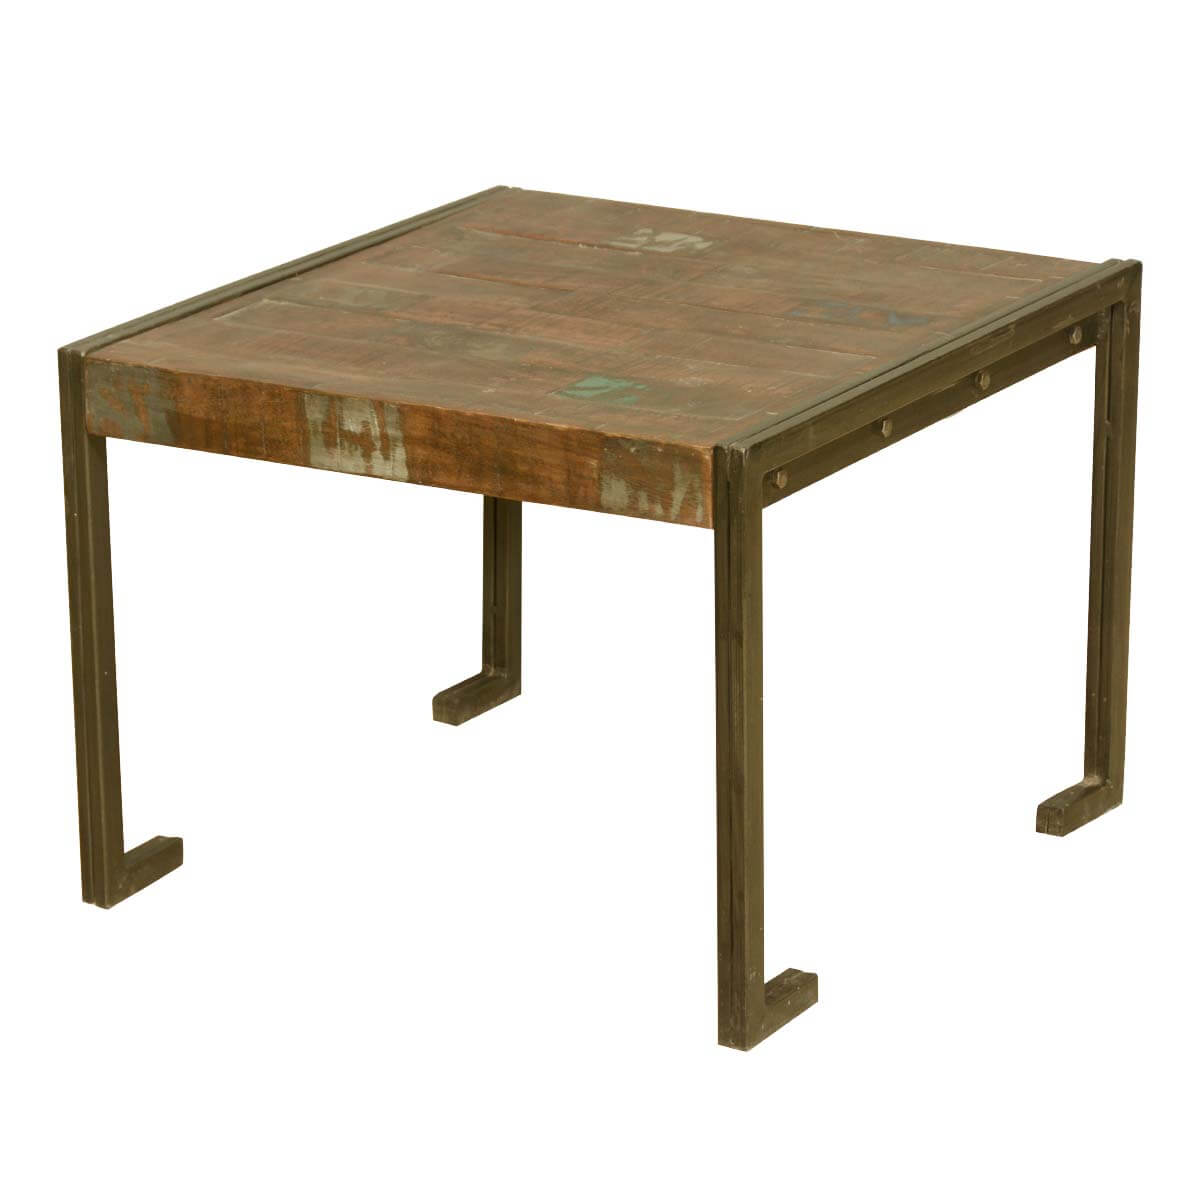 Drakensberg Old Reclaimed Wood Metal Frame Industrial Rustic End Table